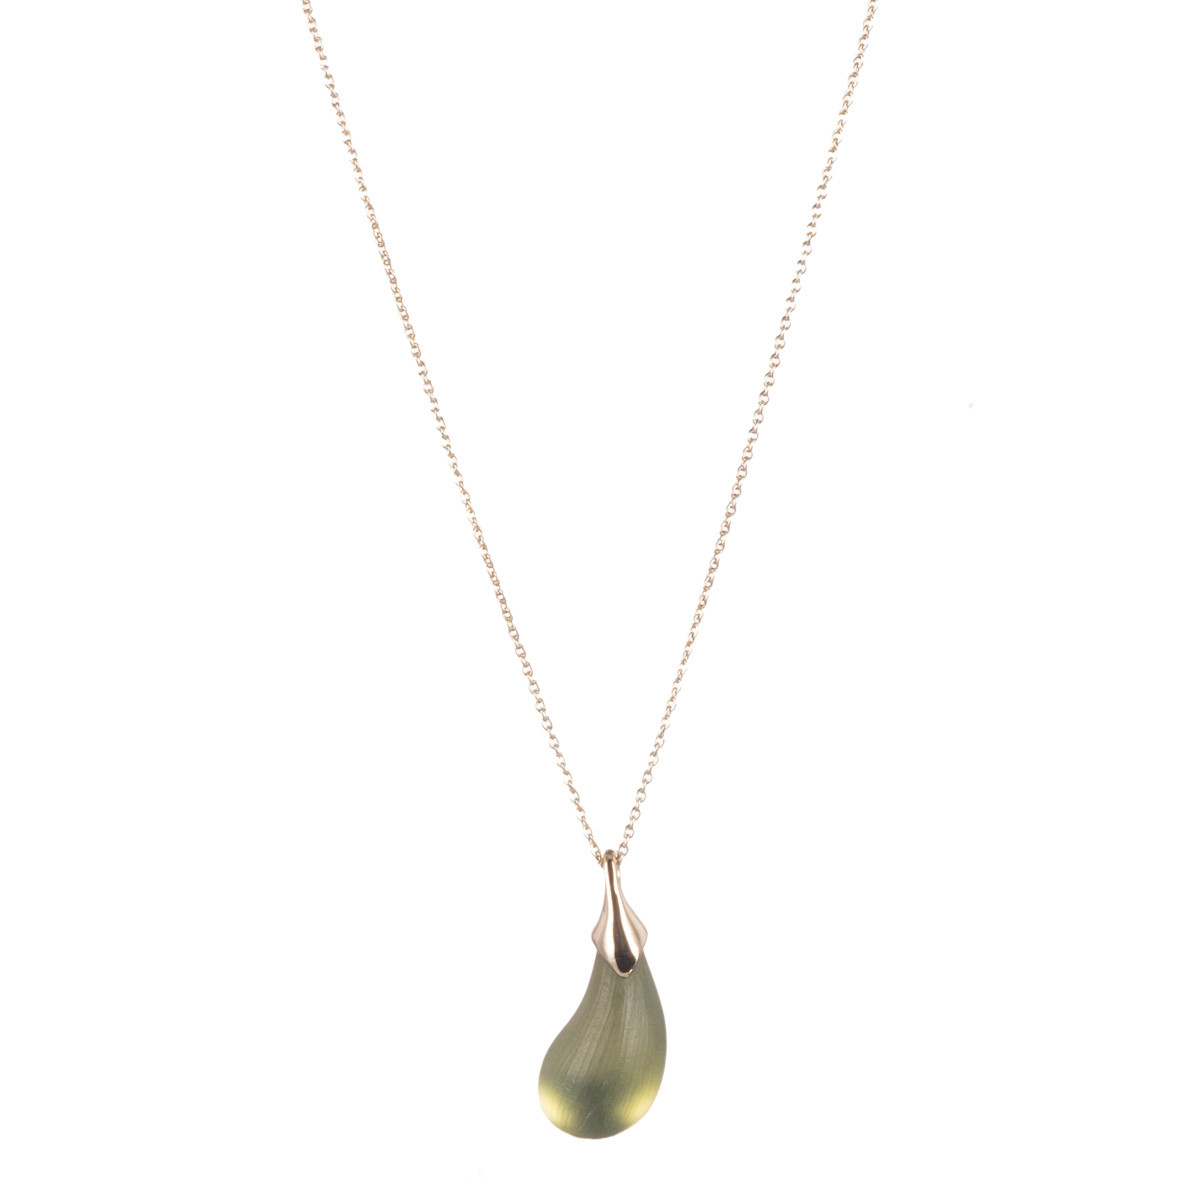 Alexis Bittar With Regard To Most Recently Released Royal Green Crystal May Droplet Pendant Necklaces (View 2 of 25)